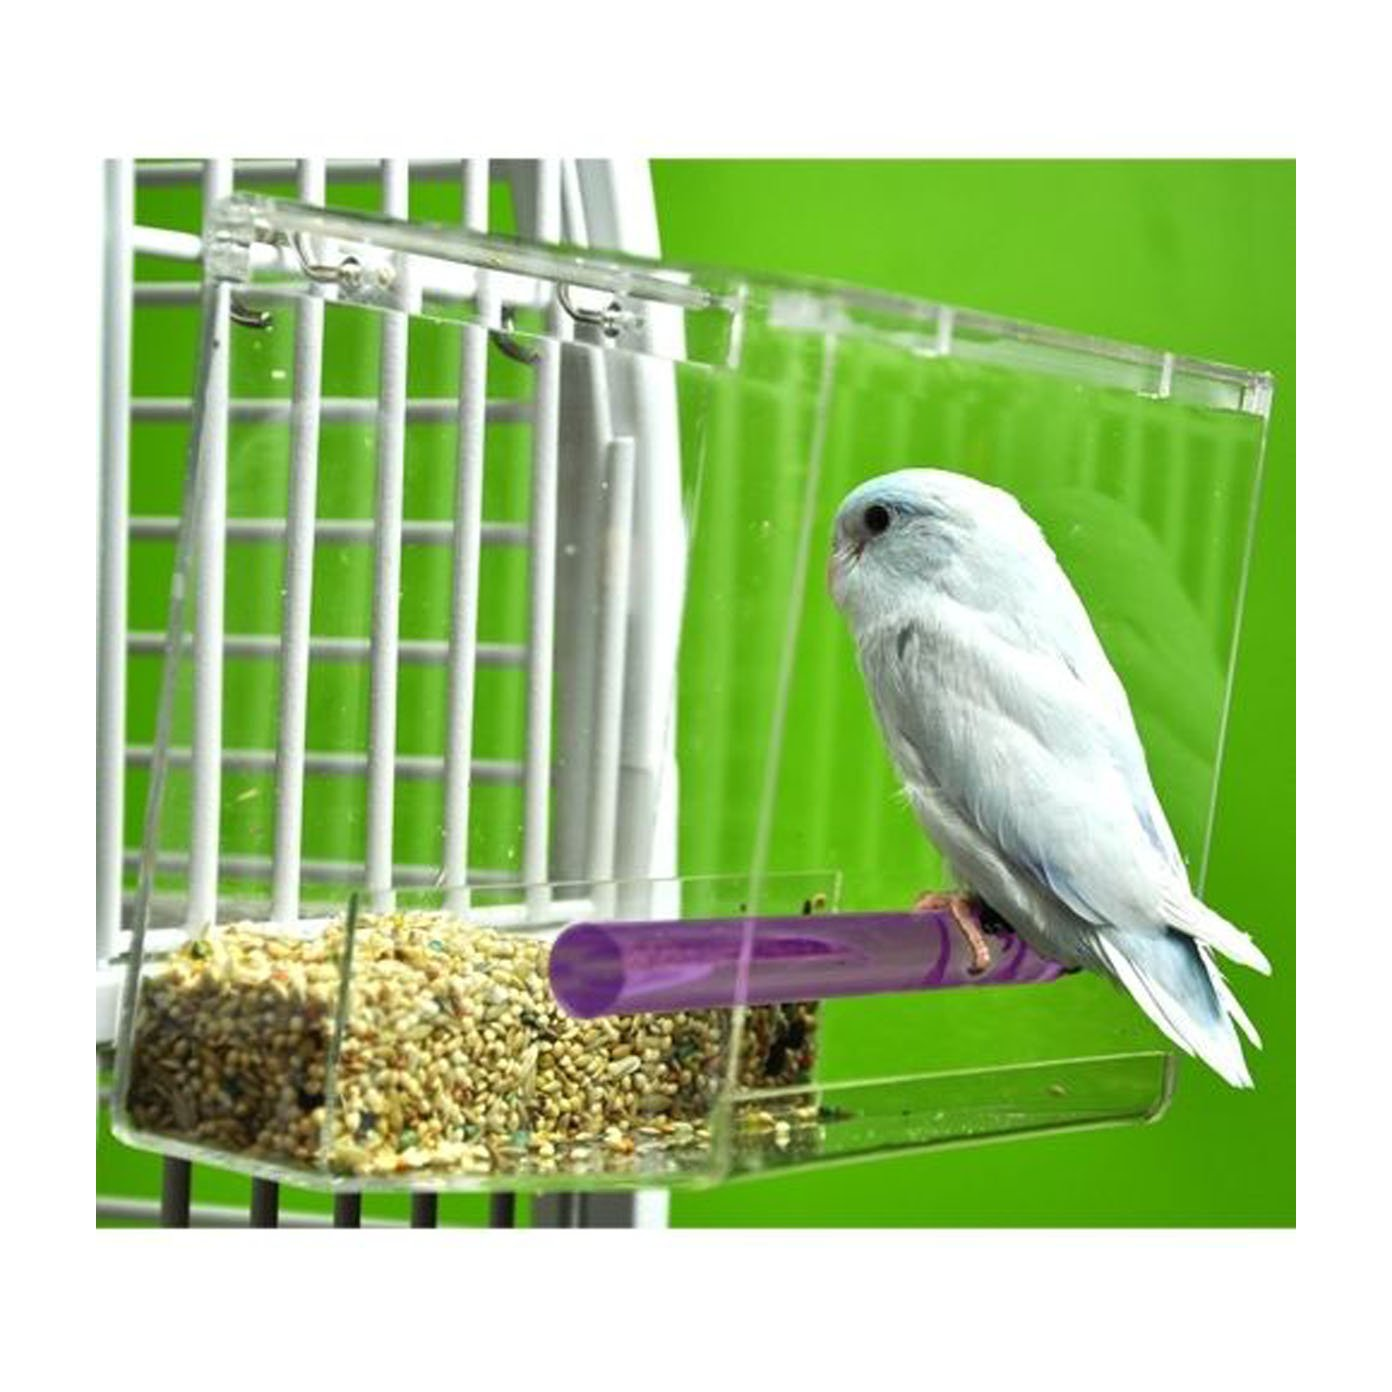 Tweeky Clean tidy Bird Feeder parrot toy toys canary cockatiel finch seed mess by Unknown